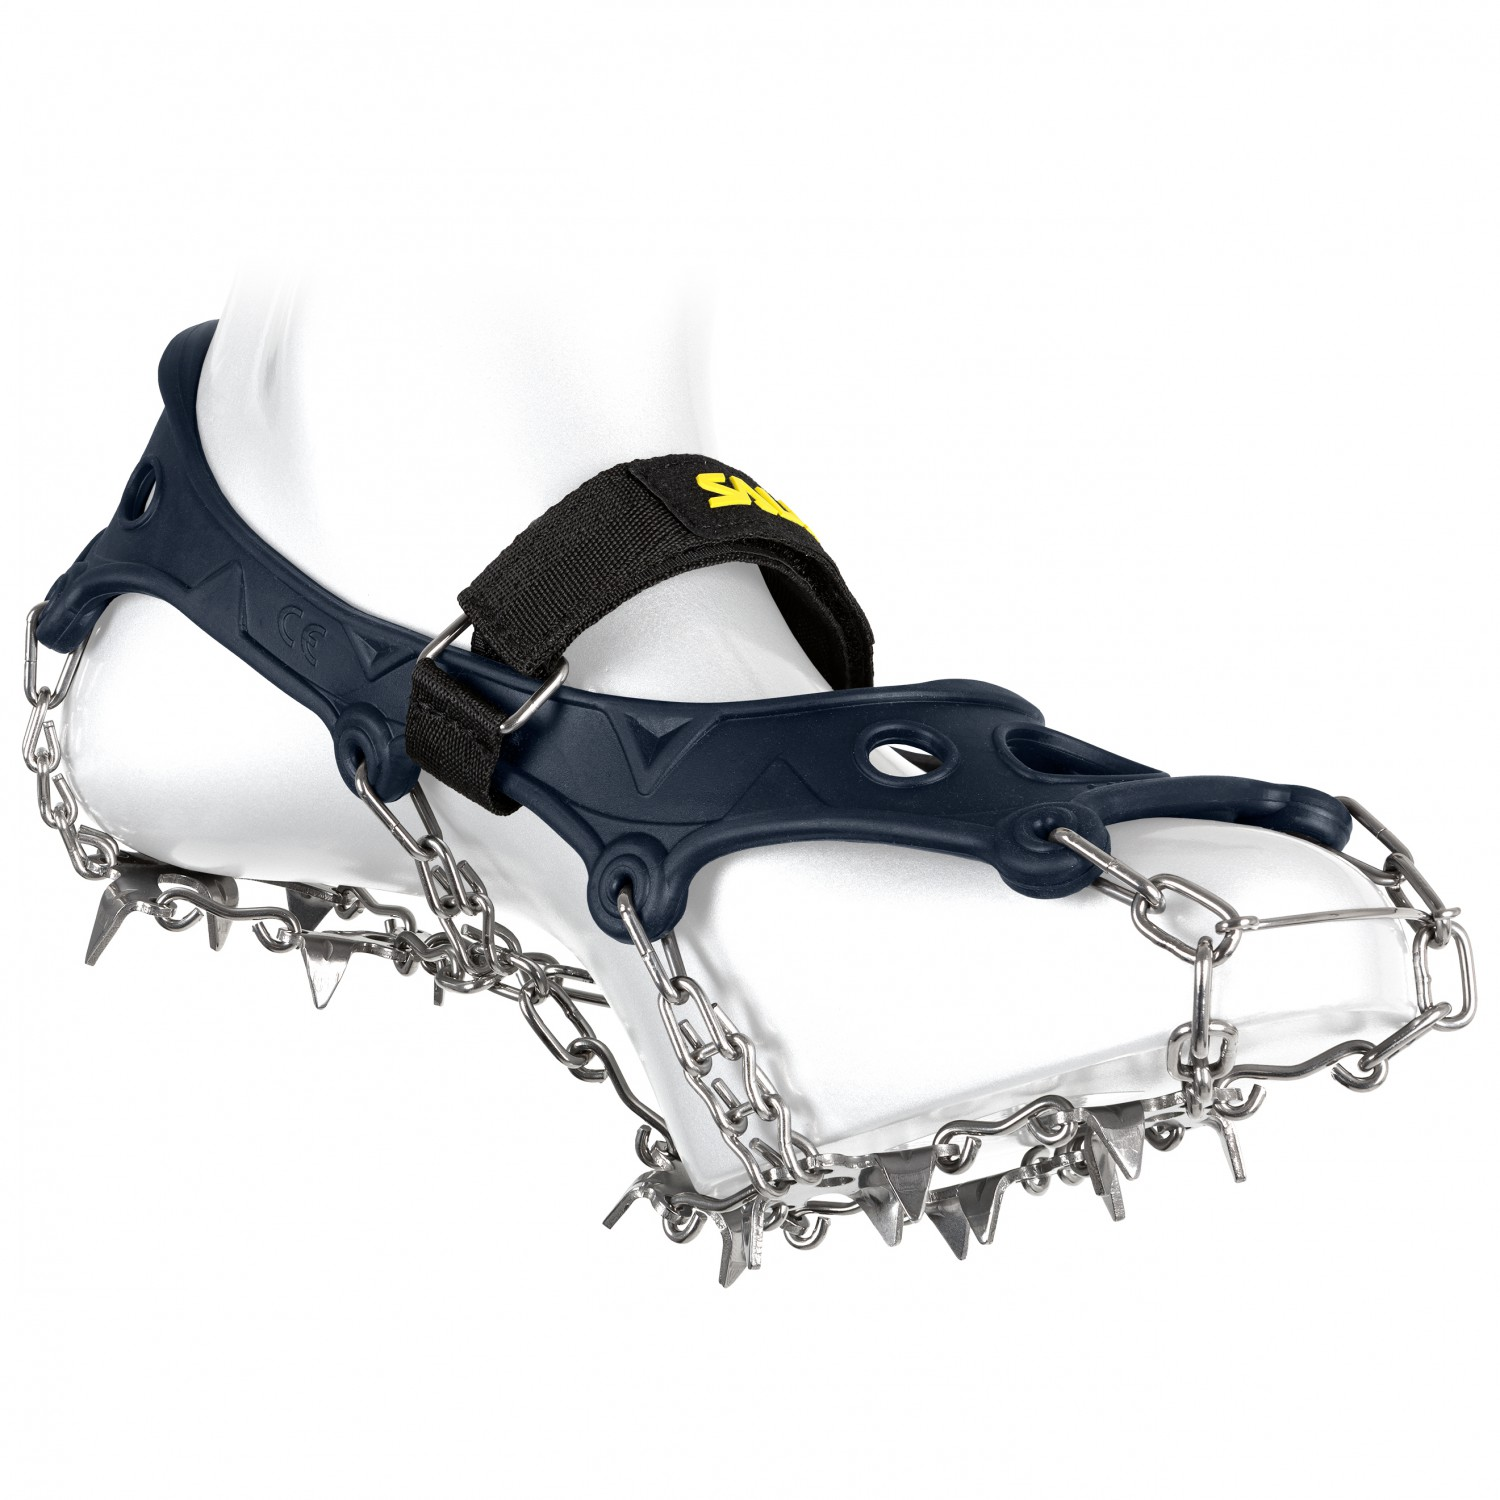 info for 72d2a 8e7a3 Salewa - Mountain Spike Crampon - Snow spikes - Black Night | S